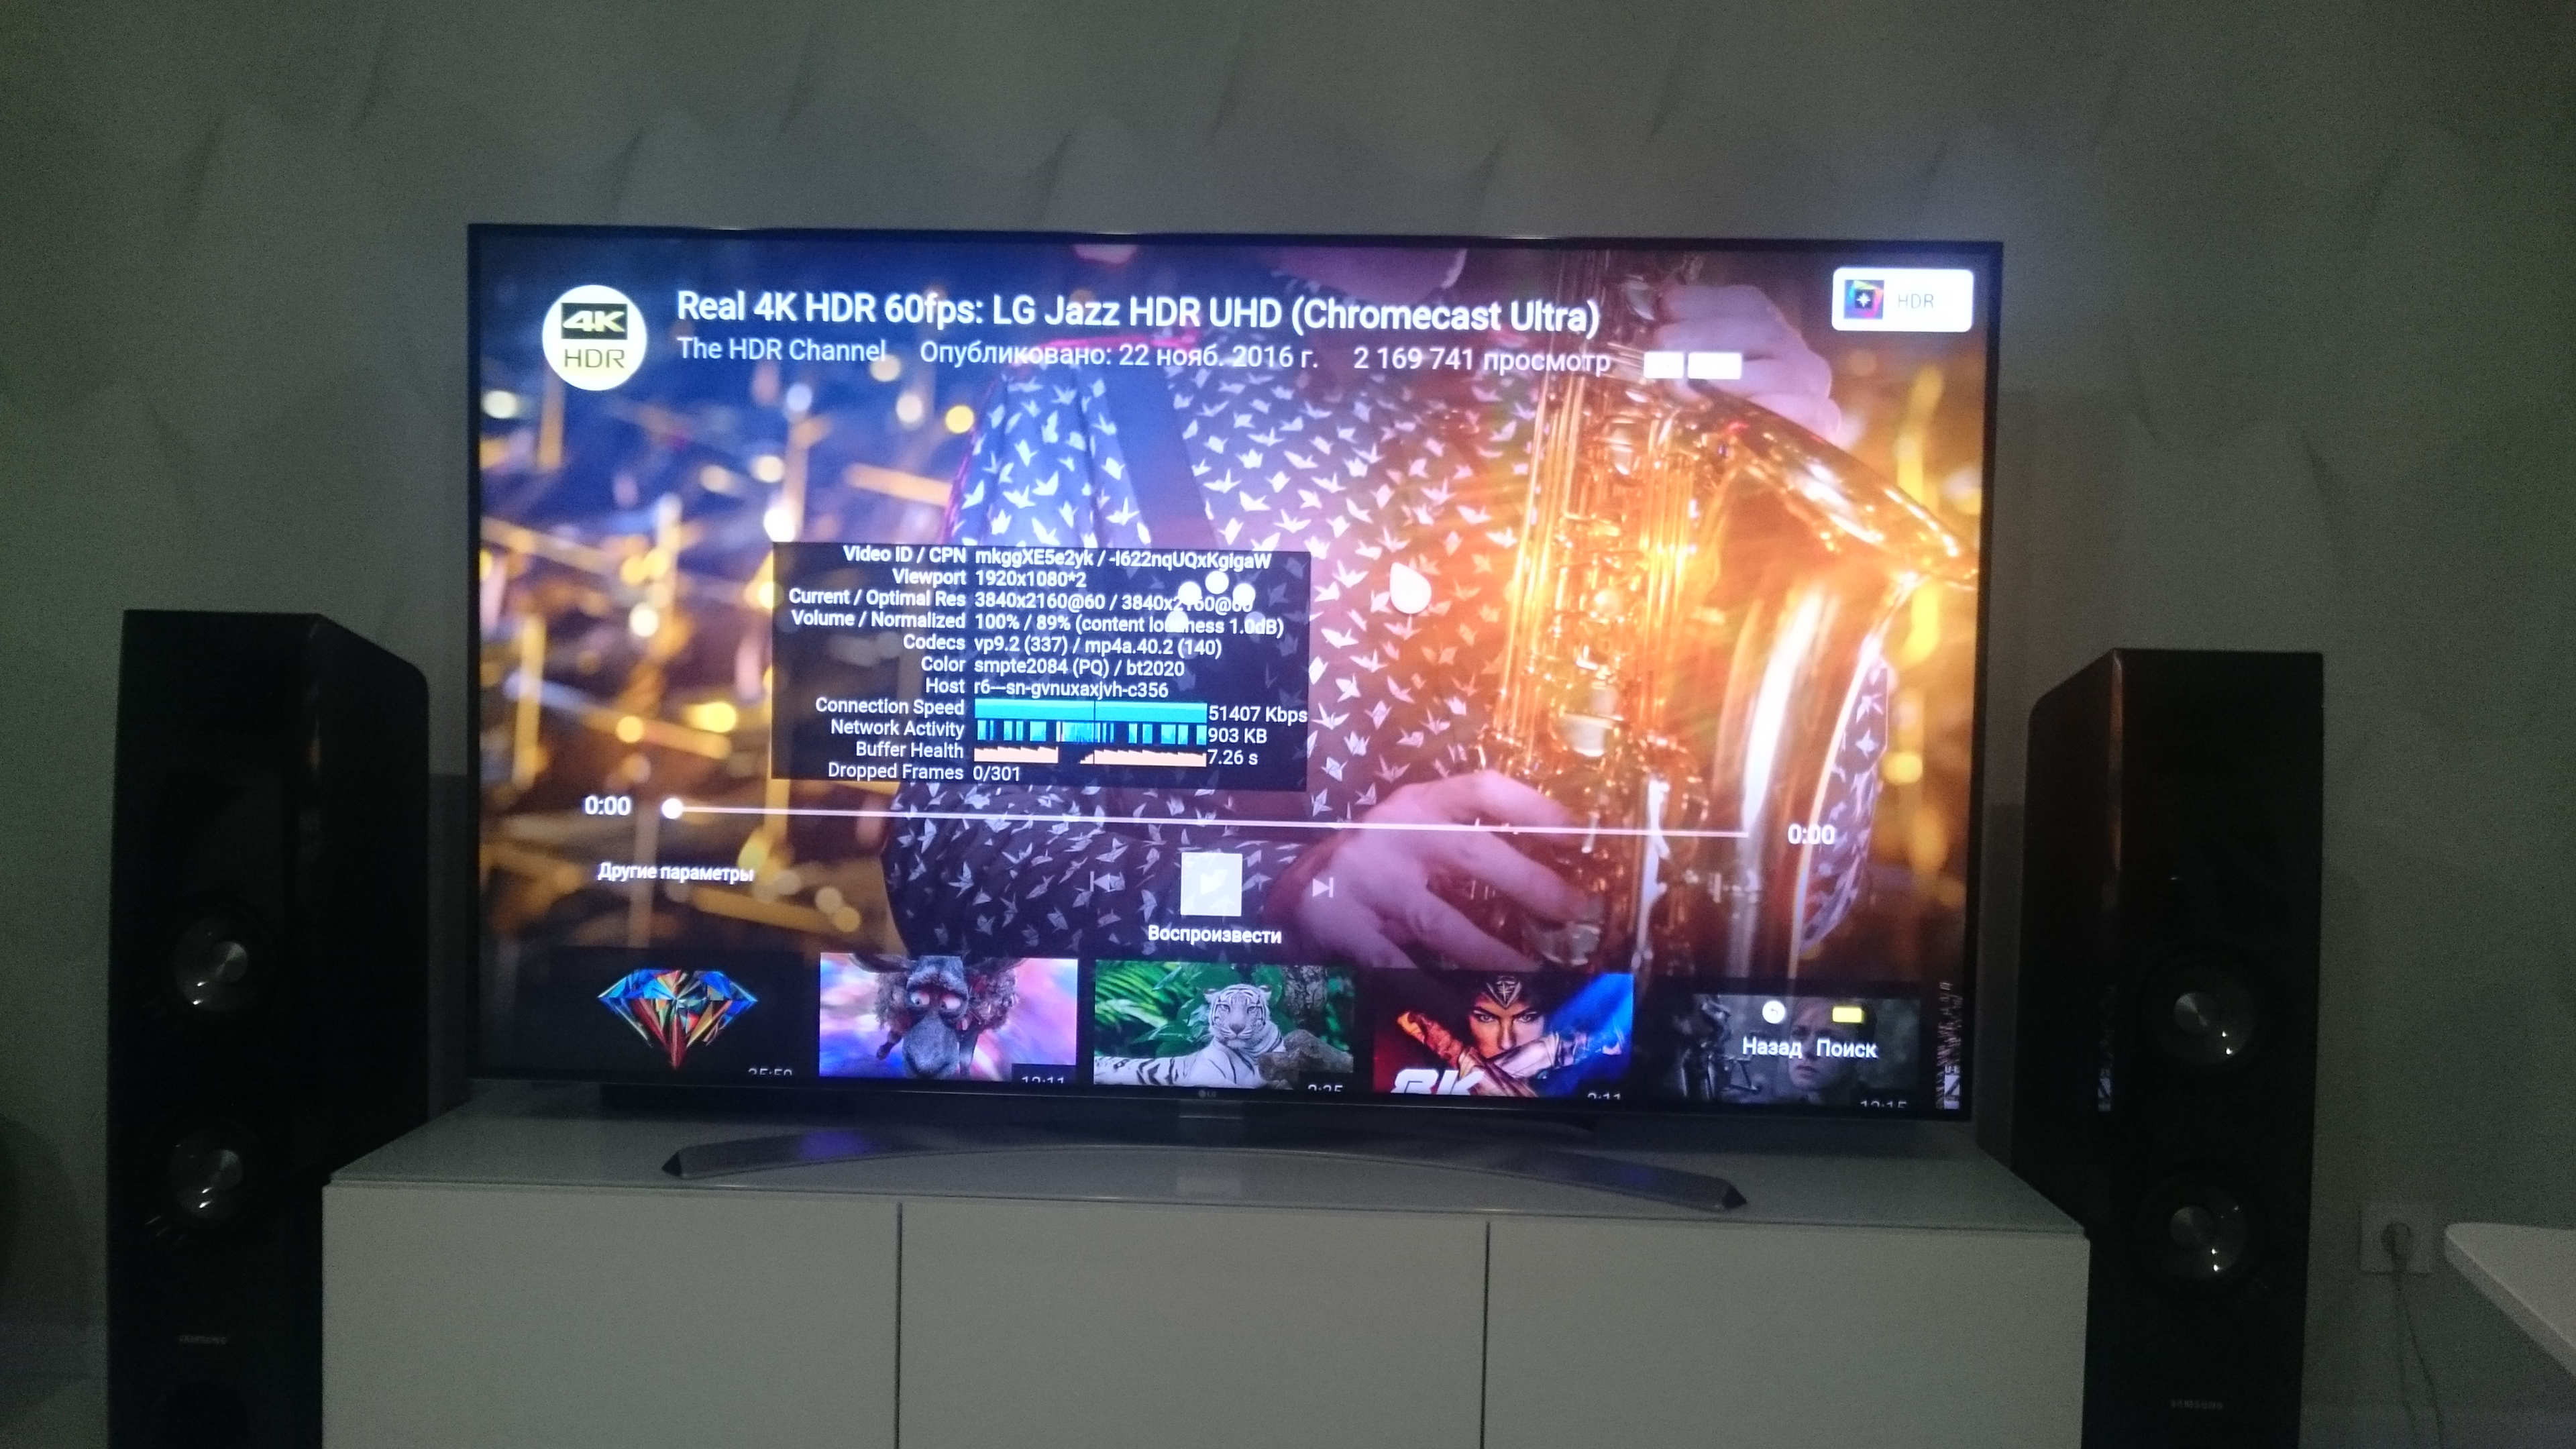 4K HDR Youtube LG TV.jpg